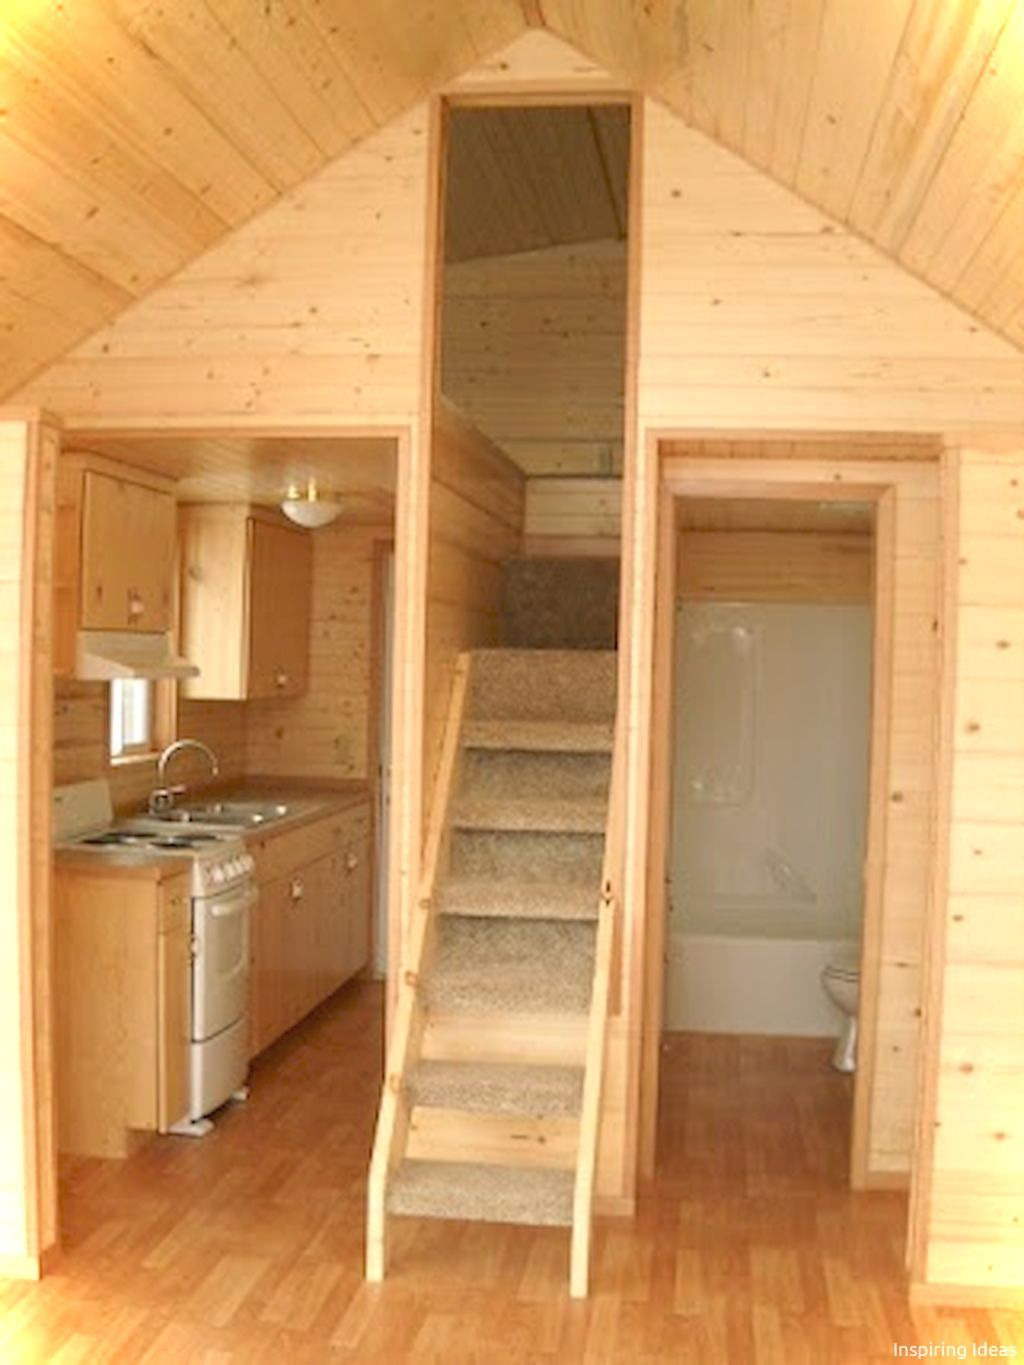 Pictures Of the Coolest Houses In the World Best Of Awesome Tiny House Interior Ideas World Room and Decoration